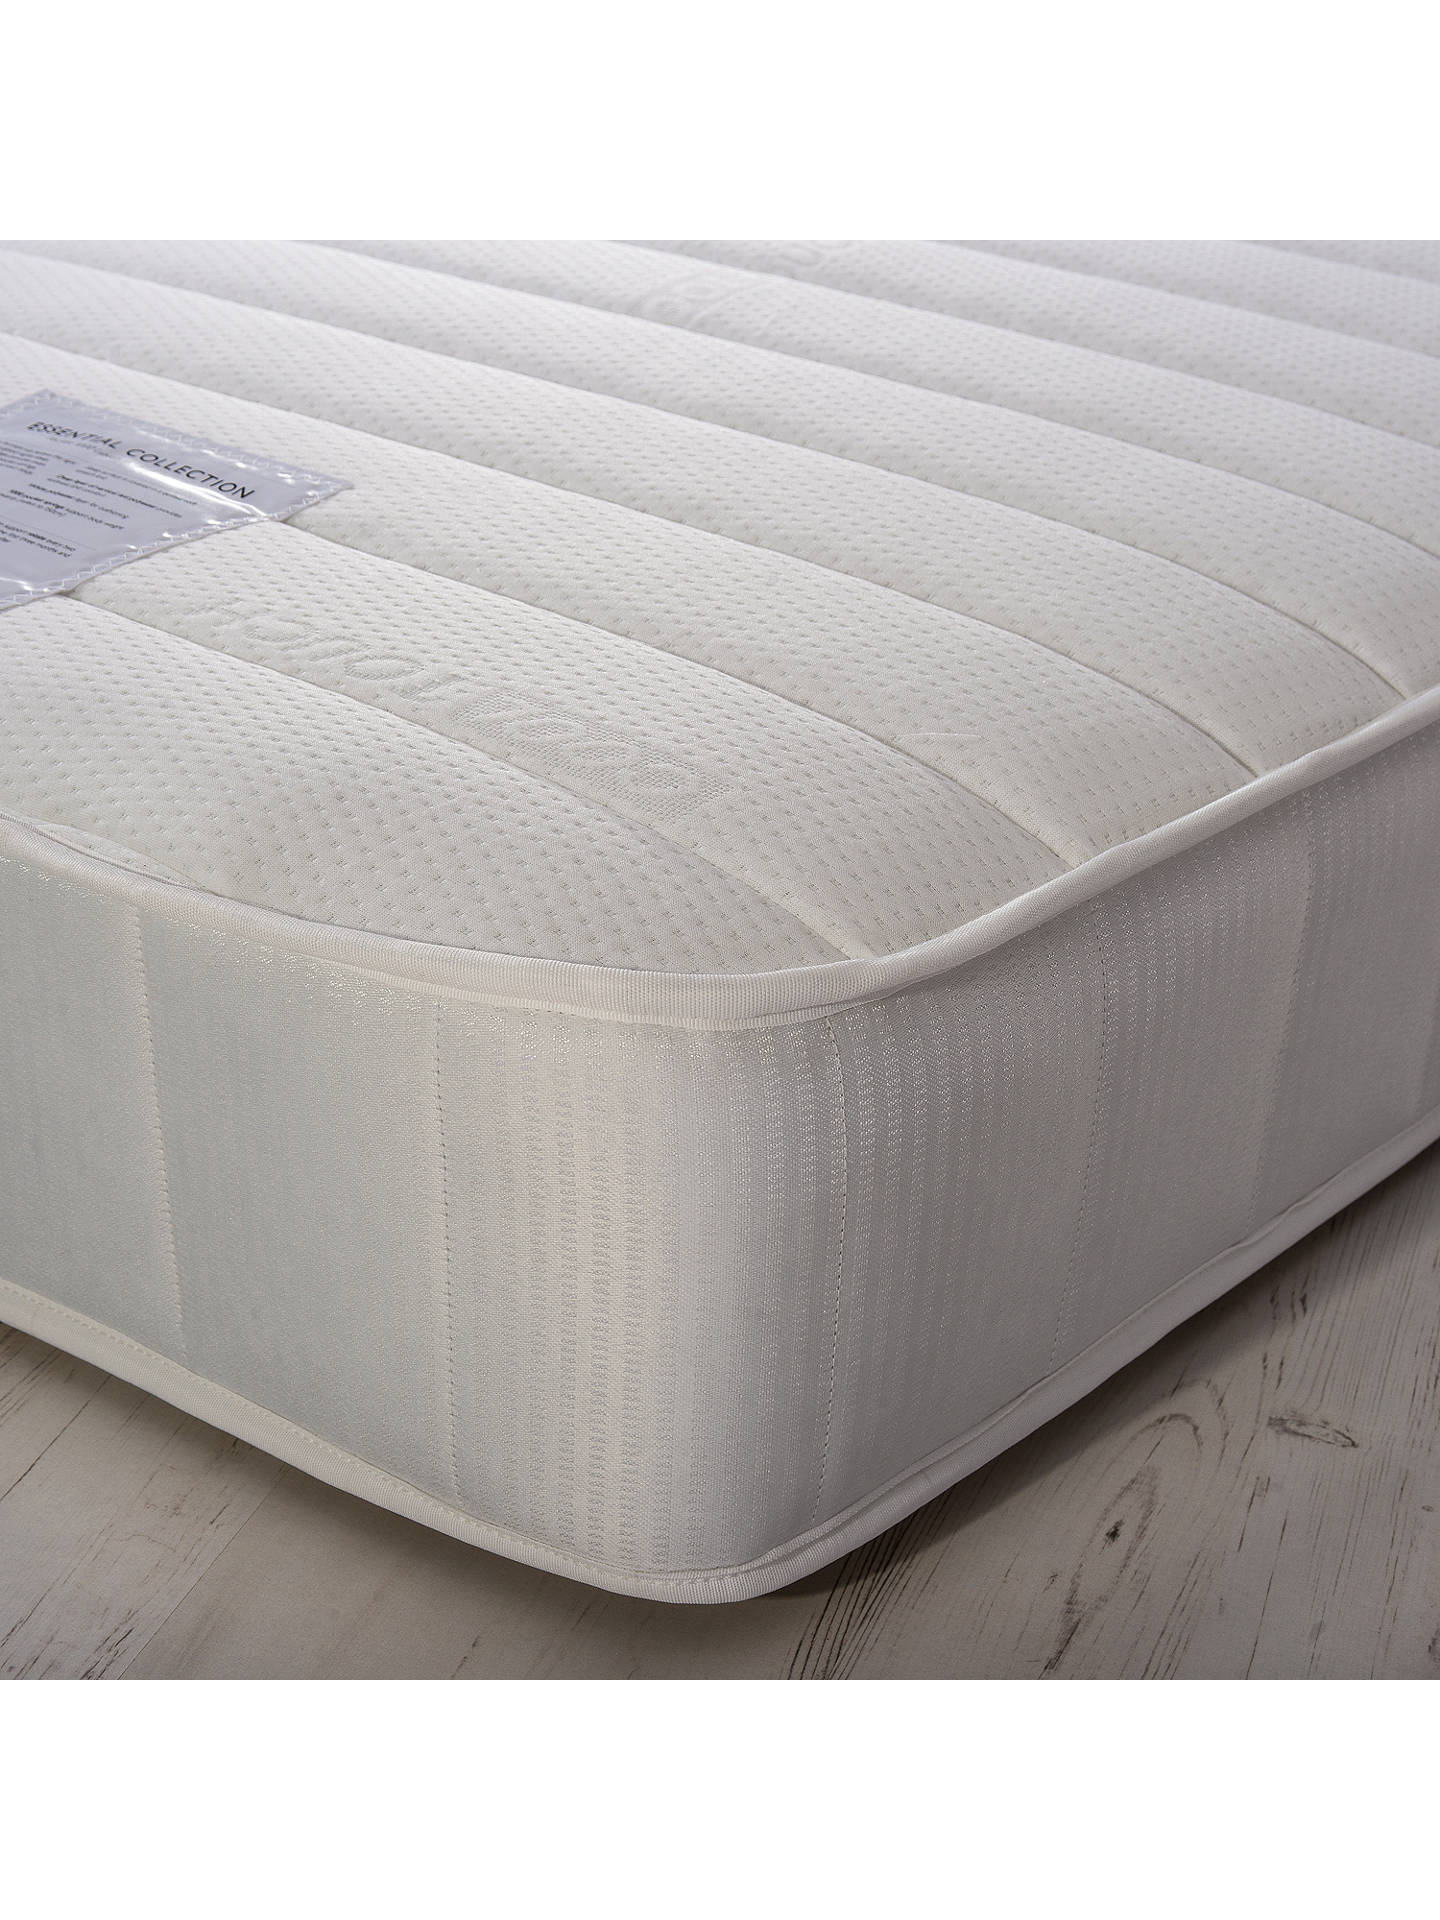 Buy John Lewis & Partners Essentials Collection Pocket 1000 Luxury, Medium Tension, Pocket Spring Mattress, King Size Online at johnlewis.com